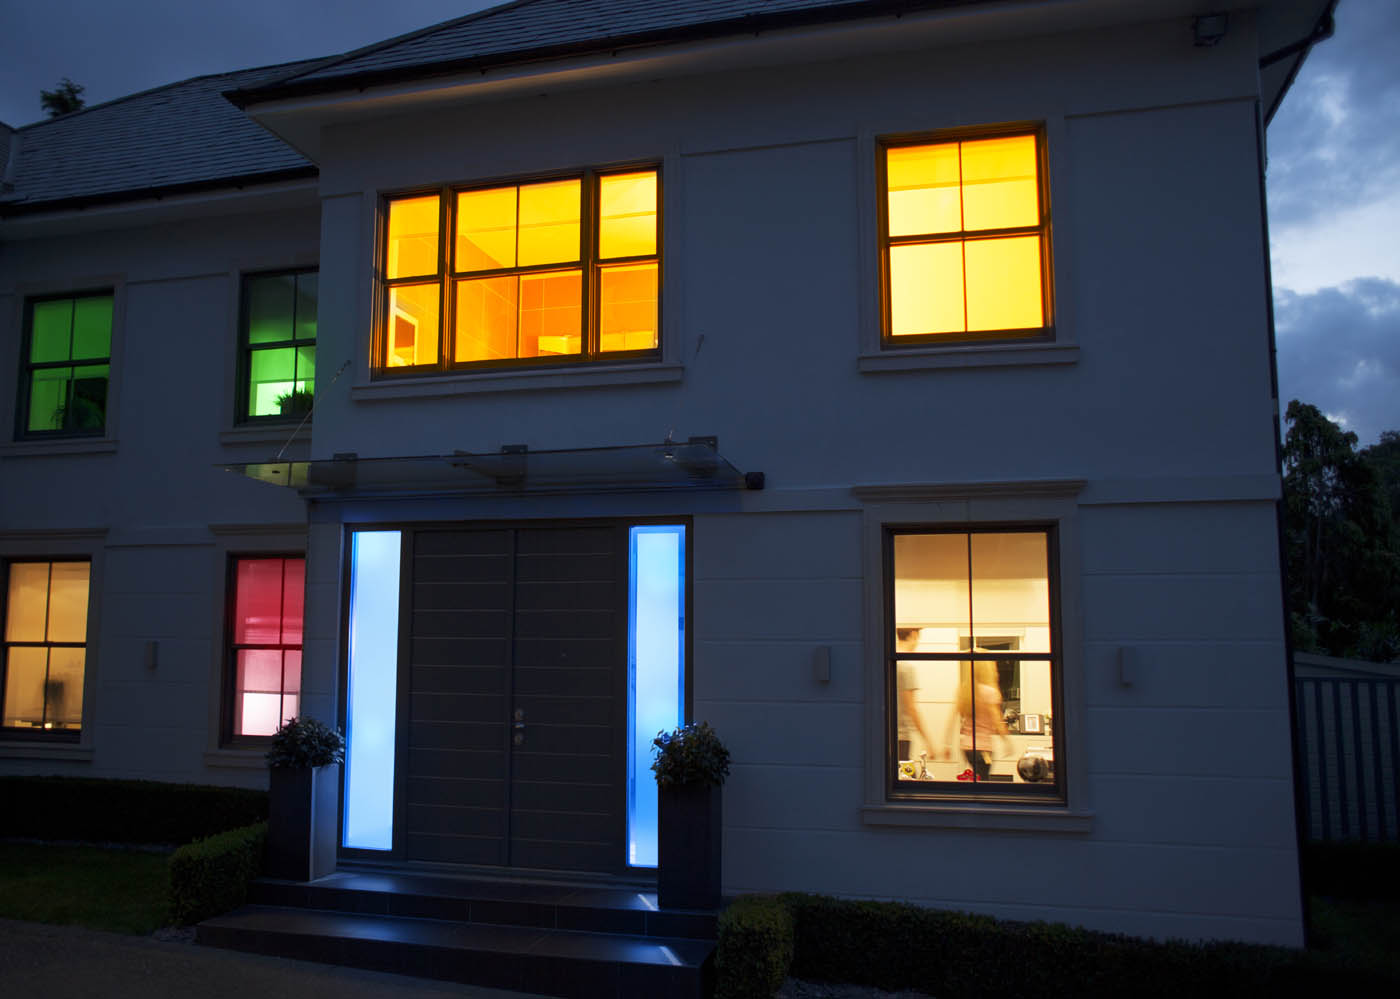 Smart Home Beleuchtung Smart Home Mit Hue Philips Partnert Mit Der Telekom Smart Light